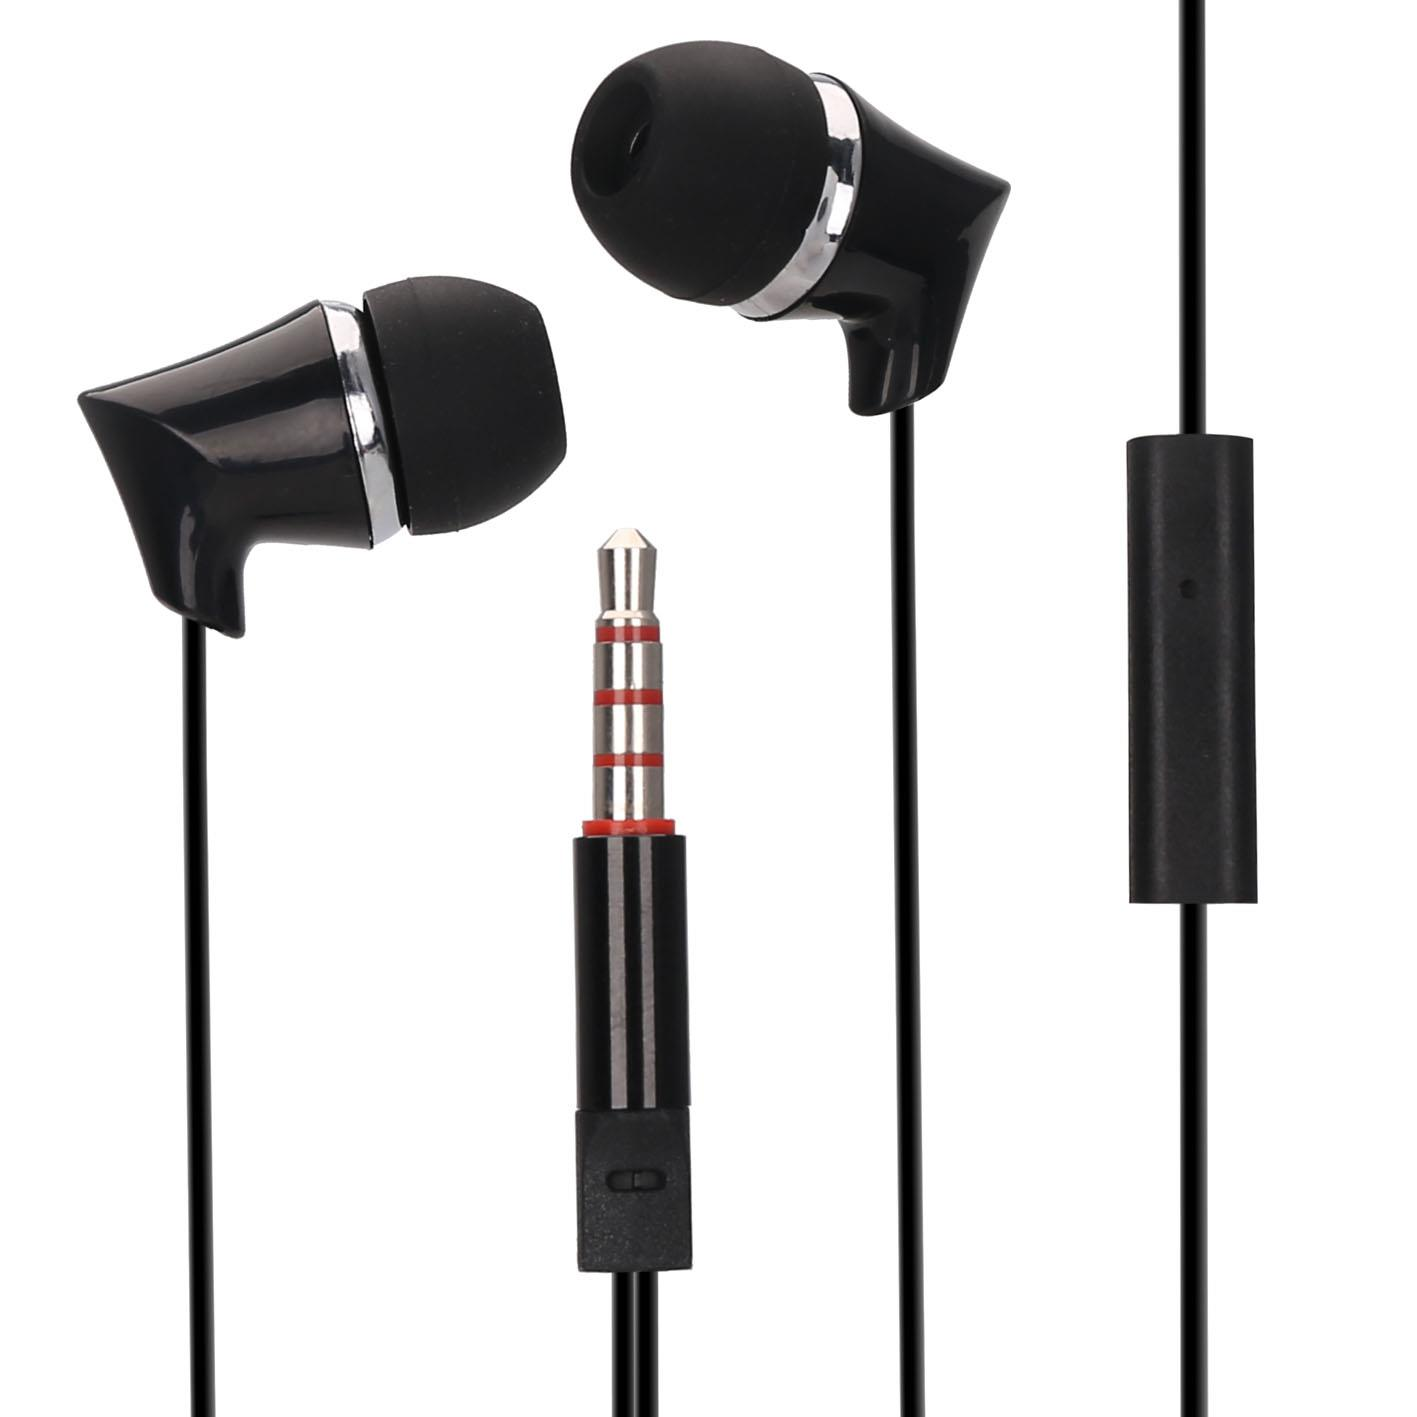 Best Earbud Headphones With Mic And Line Control Noise Isolating